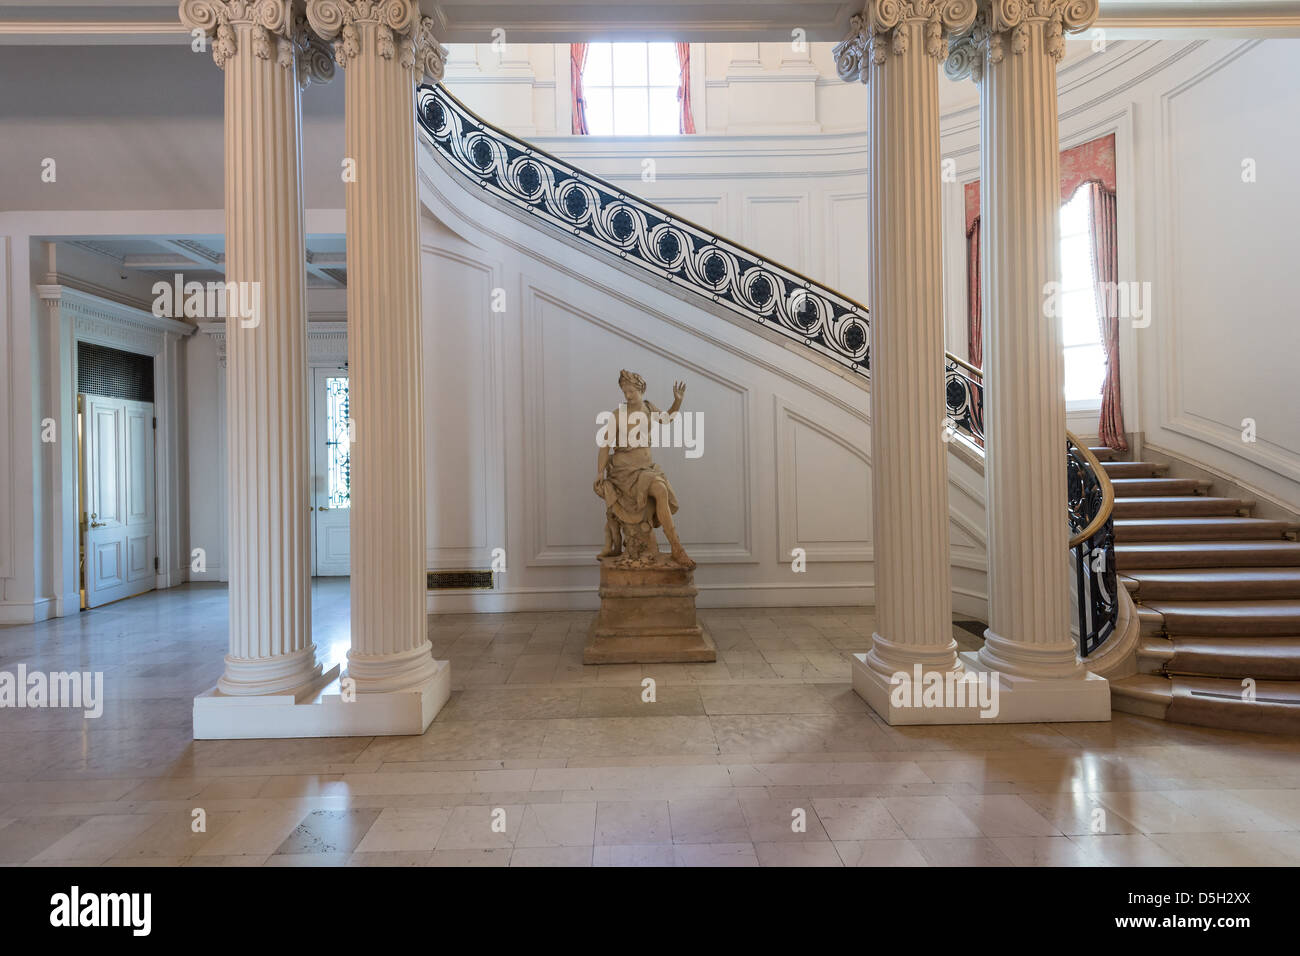 The Interior Of The Beautiful Huntington Art Gallery At The Huntington  Library And Botanical Gardens In